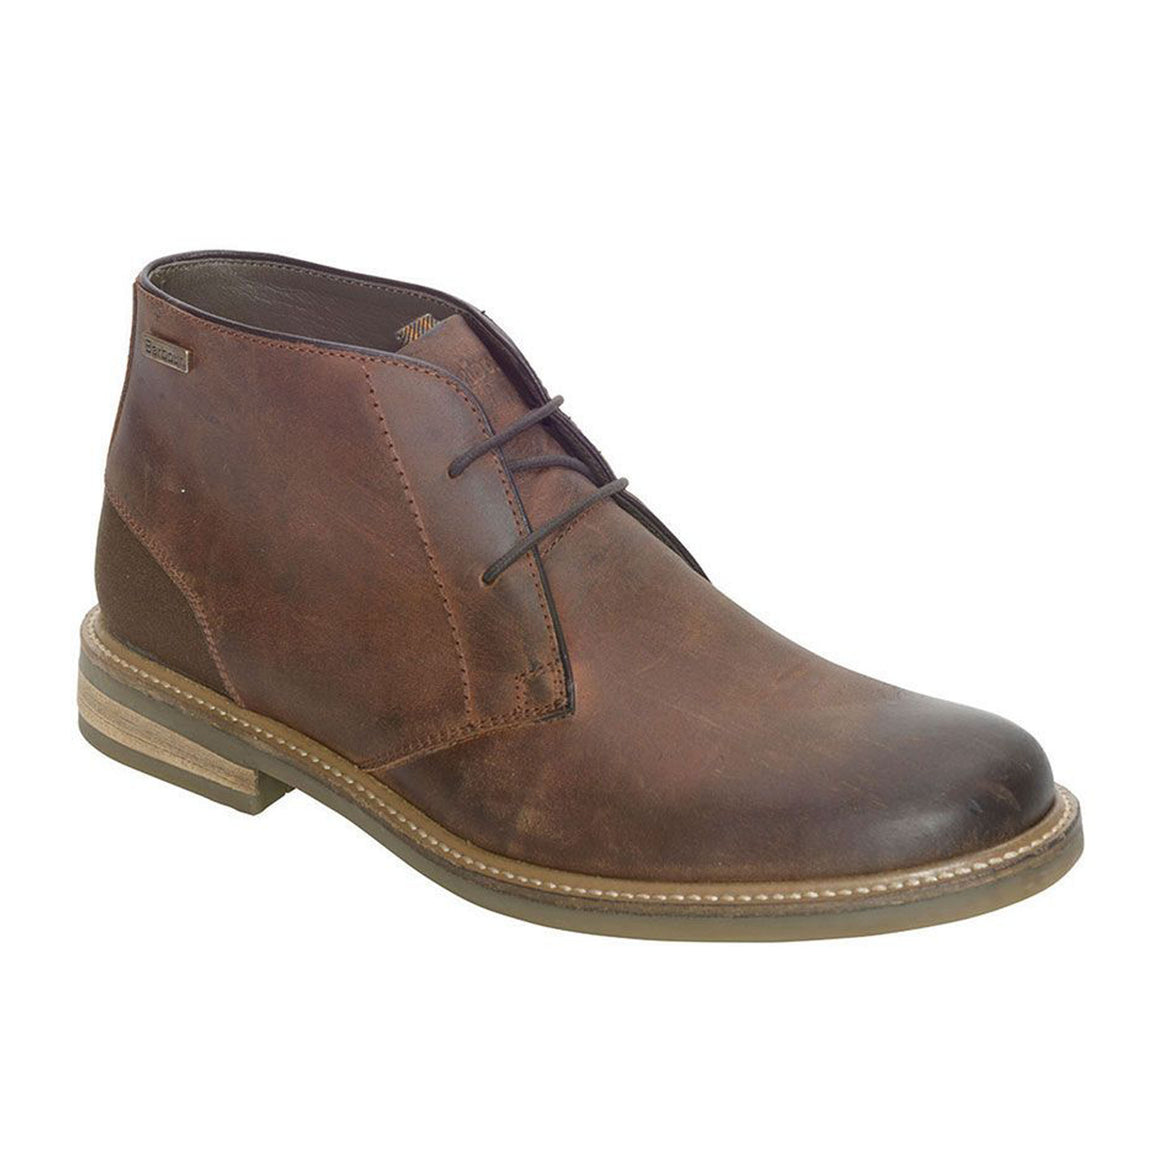 Redhead Chukka Boot for Men in Tan